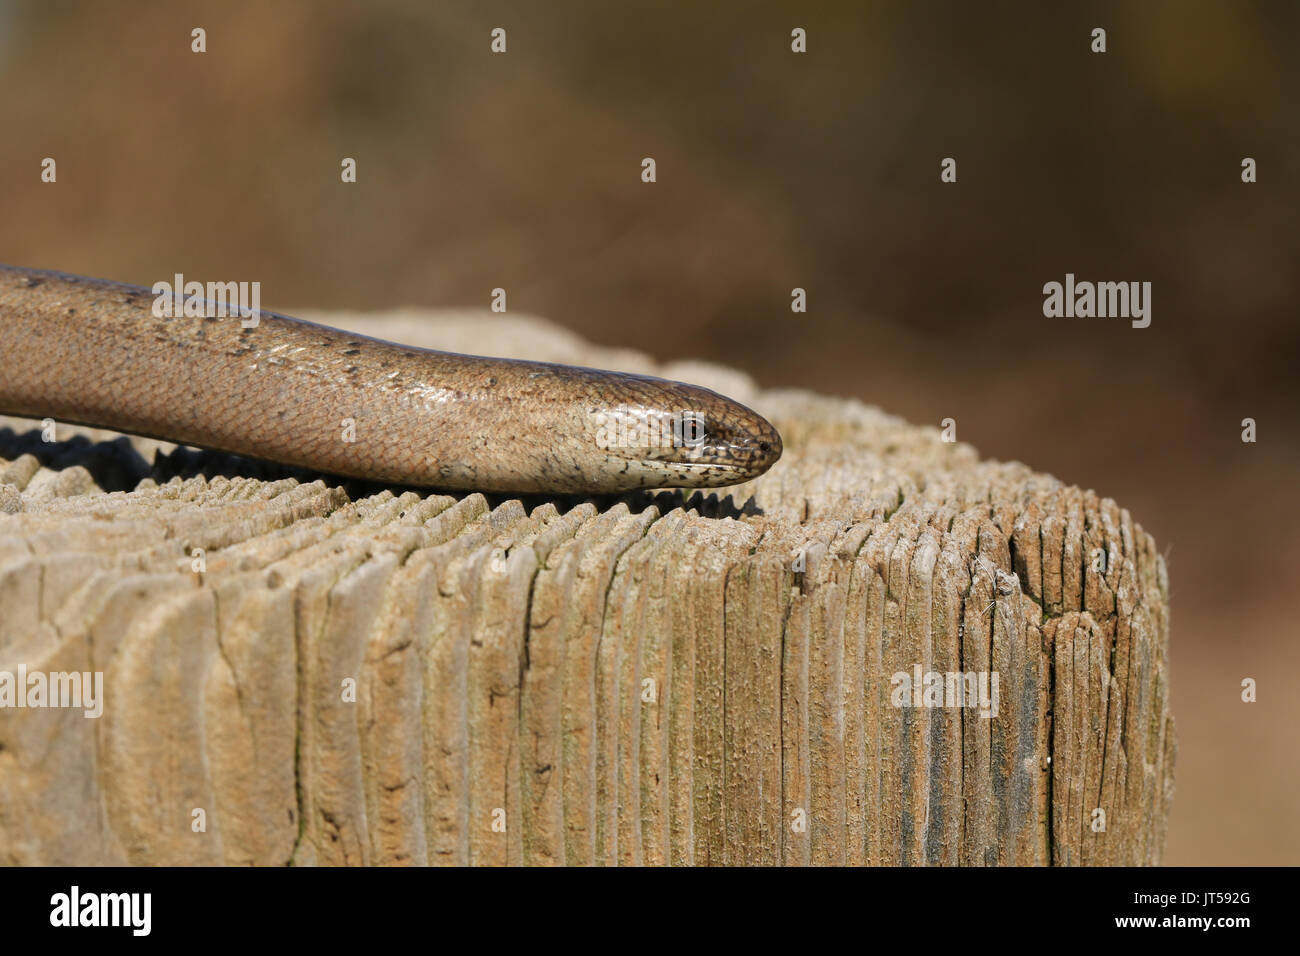 A head shot of a Slow-worm (Anguis fragilis) warming itself in the sun. Stock Photo